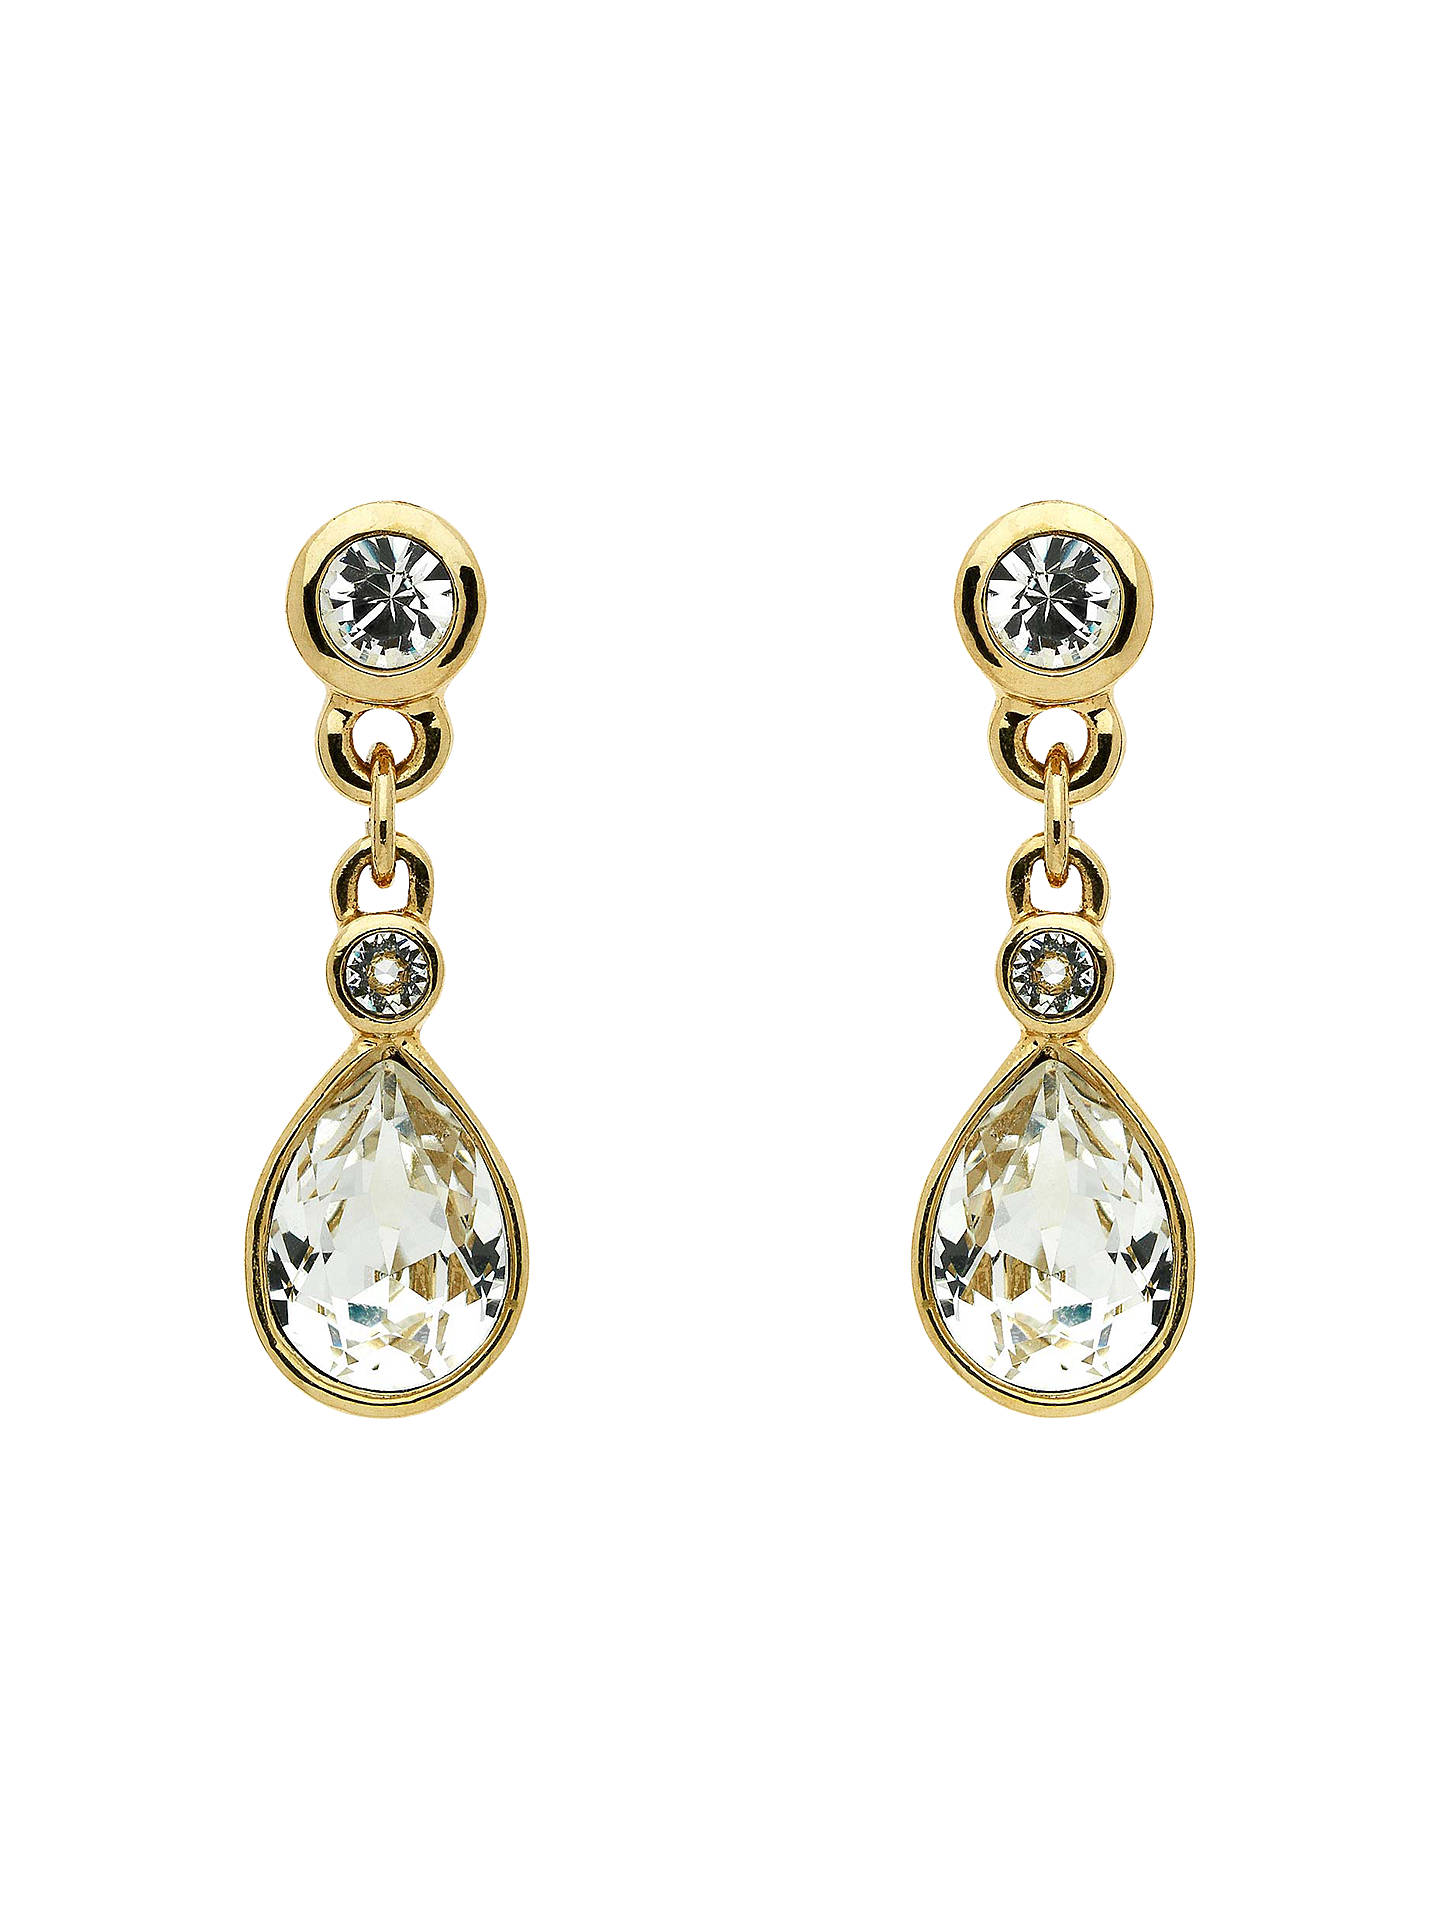 eff7616b3ea3 Buy Cachet Gold Plated Swarovski Crystal Pear Stone Drop Earrings